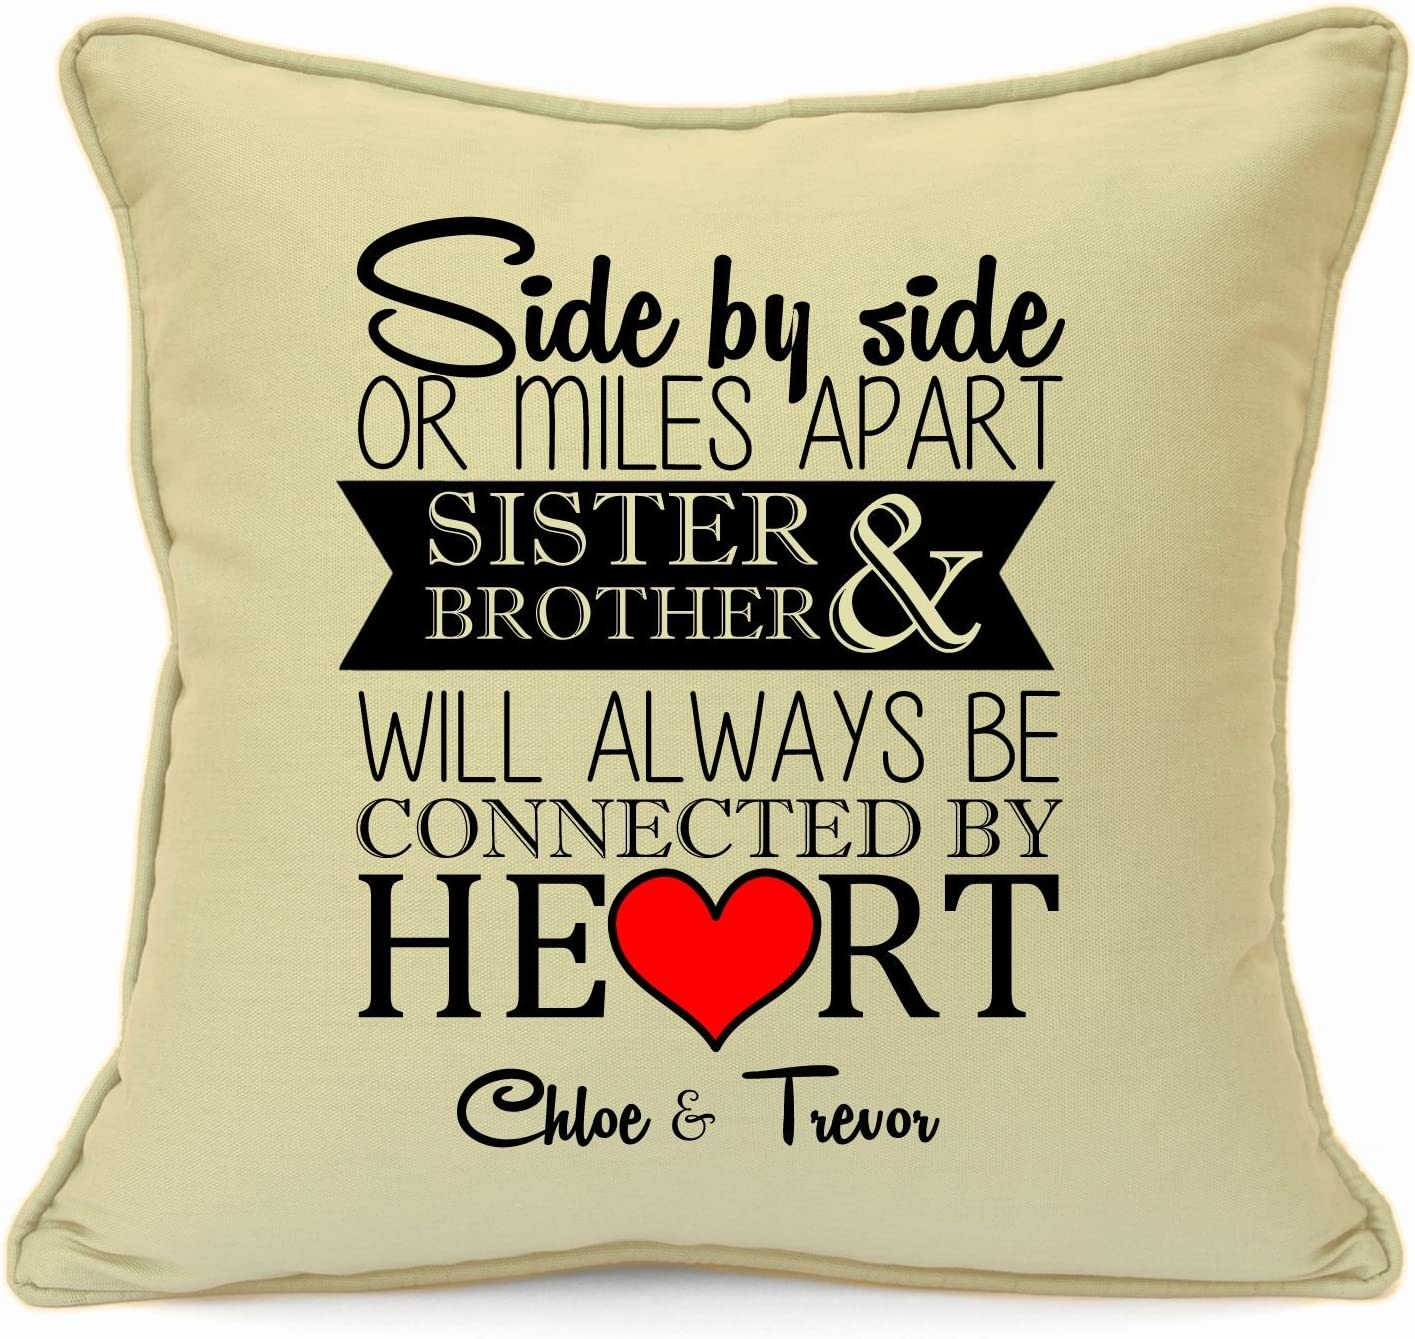 Personalised Presents Gifts For Sister Best Friends Colleagues Cousins Overseas Moving Abroad Birthday Christmas Xmas New Home House Warming Heart Touching Cushion Cover 18 Inch 45 Cm Amazon Co Uk Kitchen Home